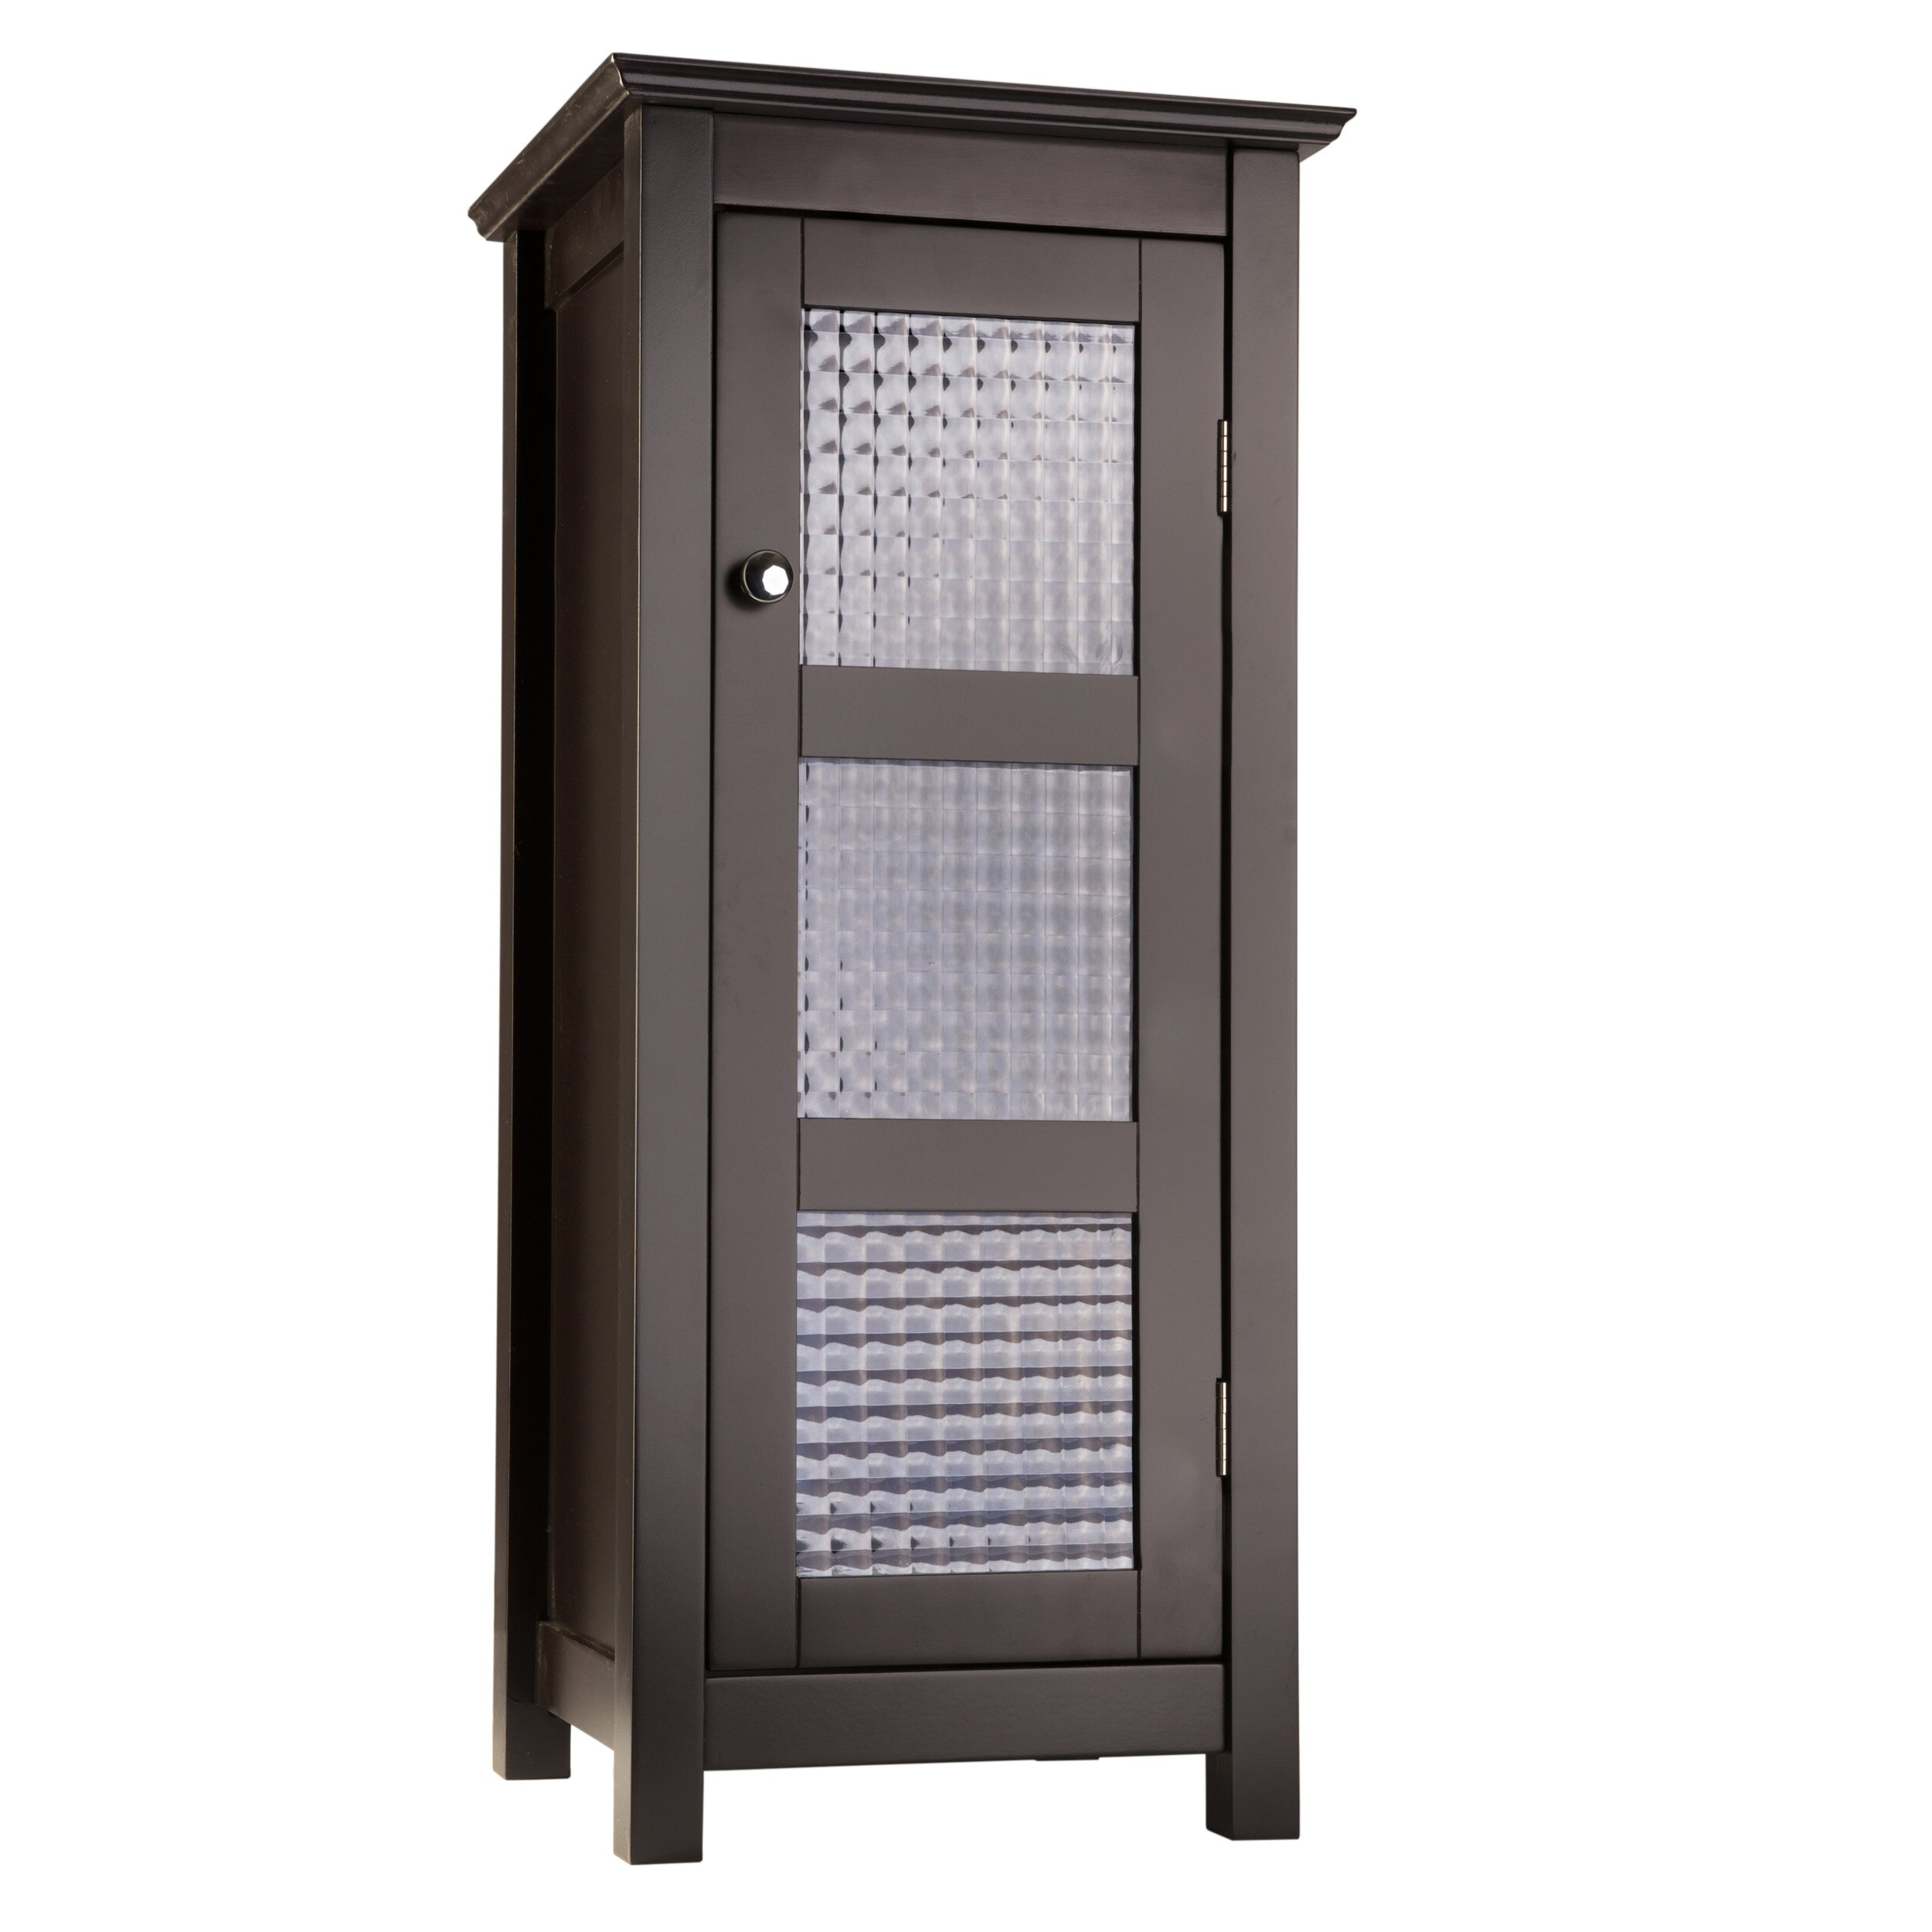 White floor cabinet with glass doors white appliances elegant home fashions chesterfield floor glass door cabinet eventelaan Image collections